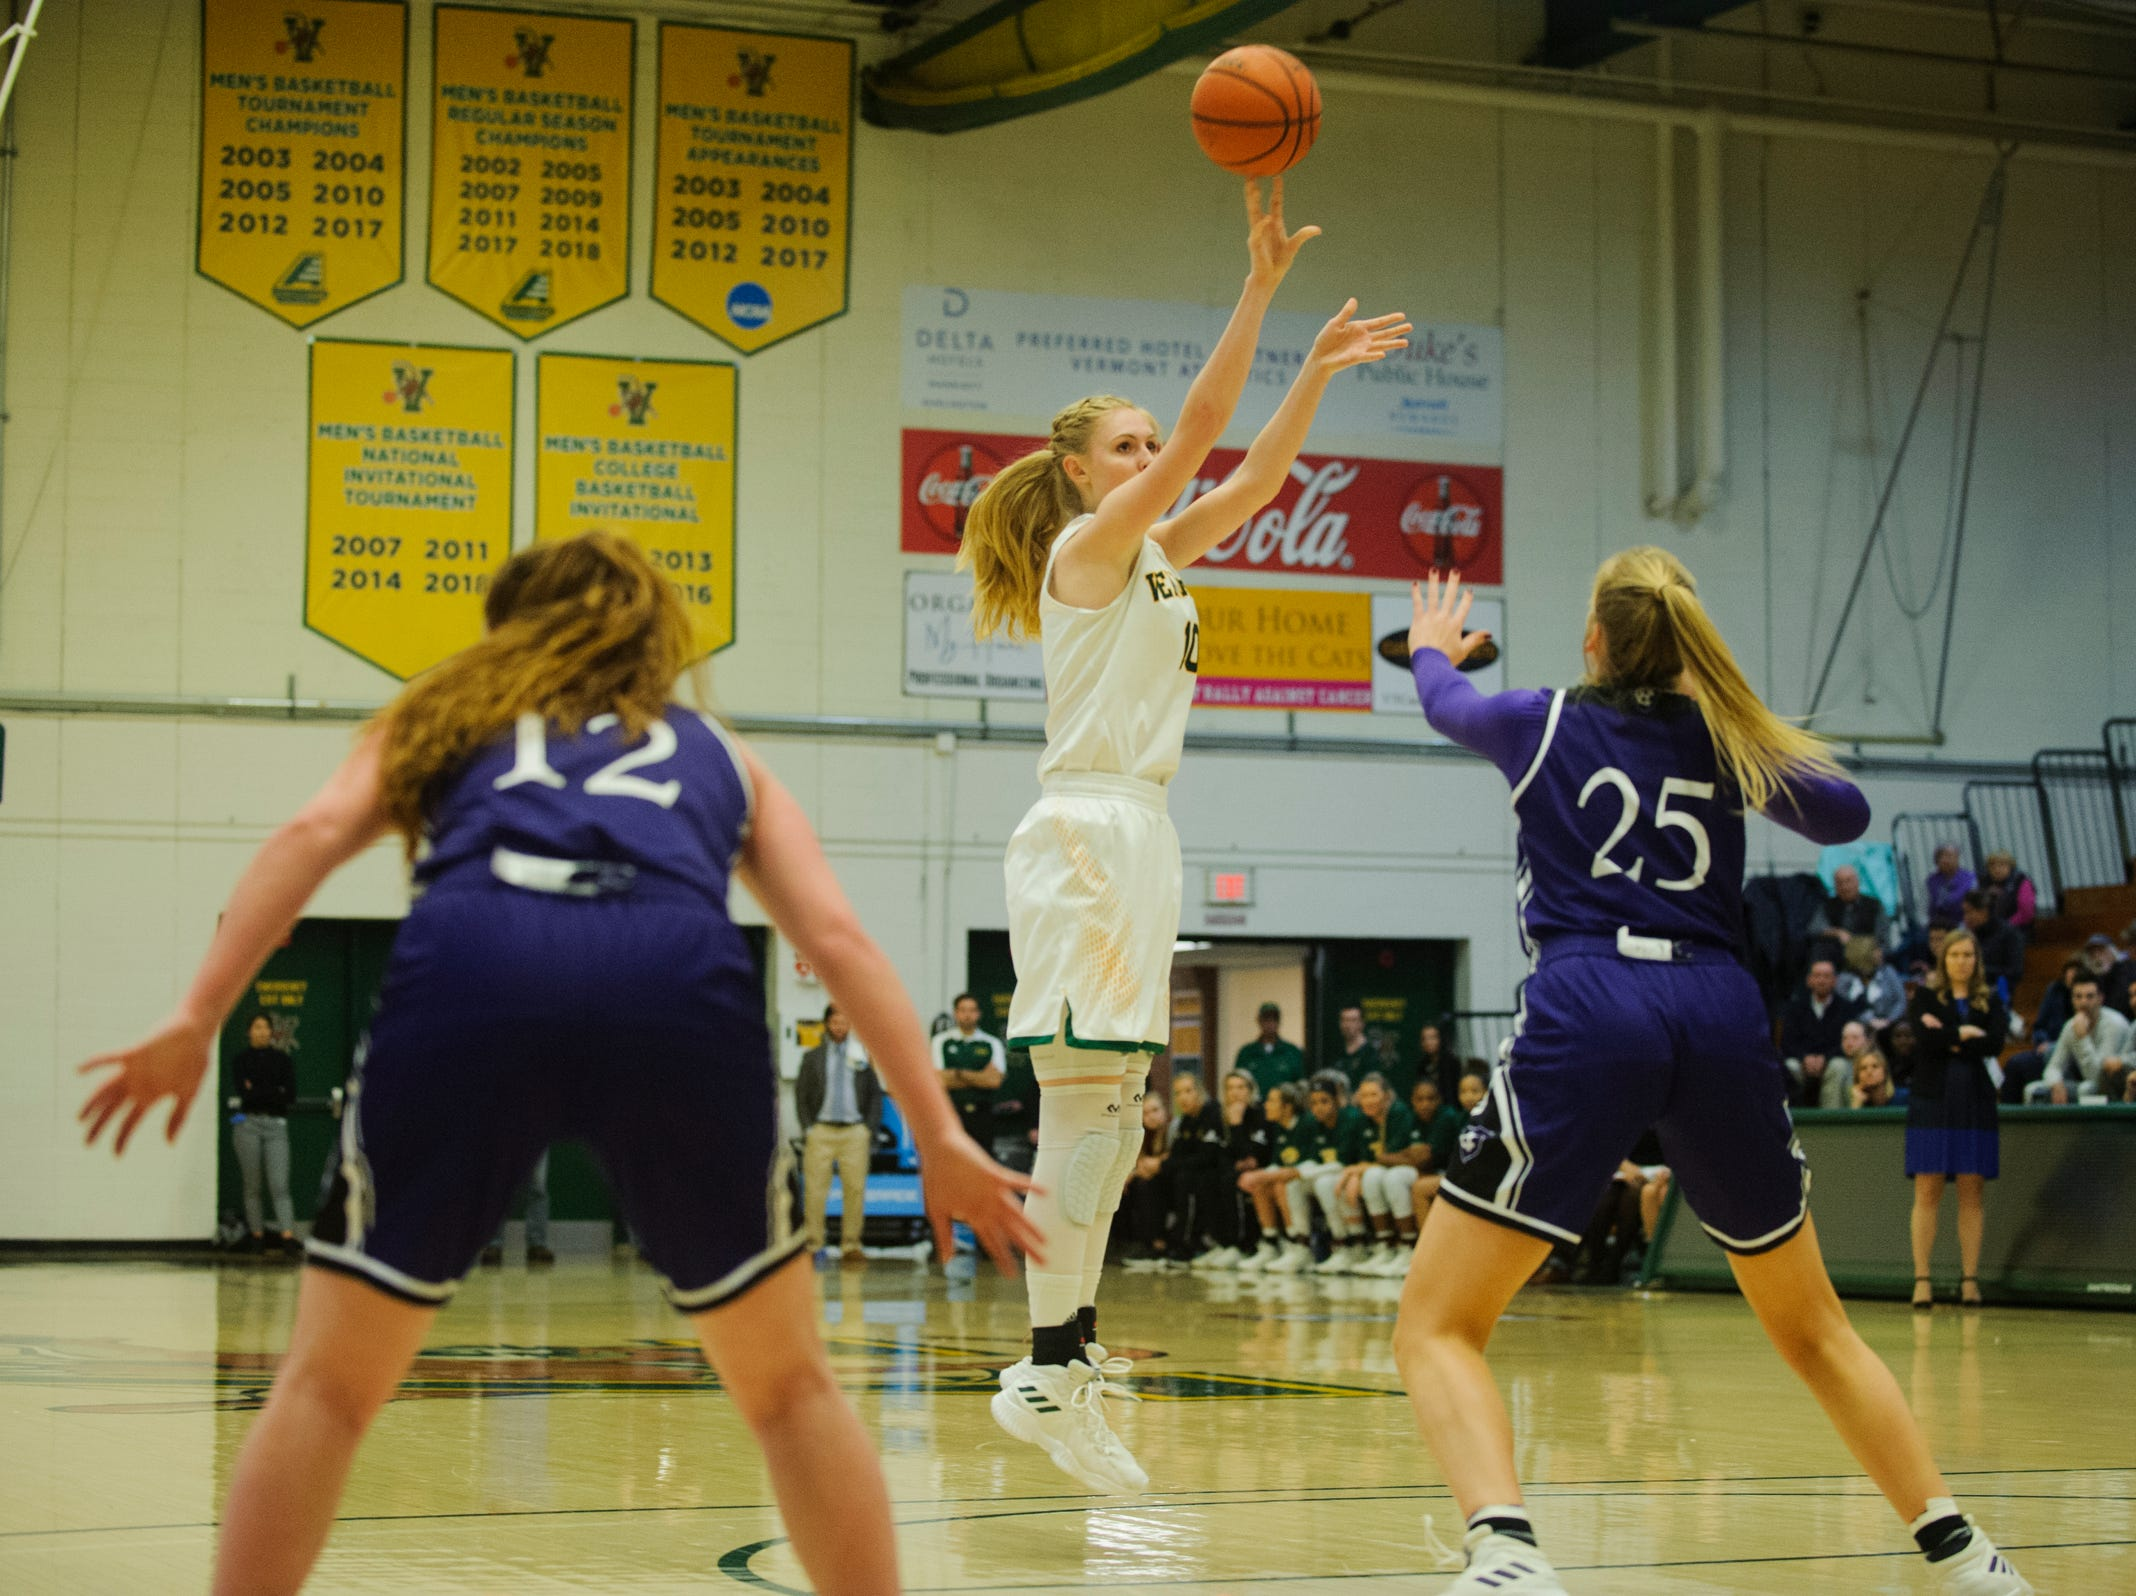 Vermont's Hannah Crymble (10) shoots a three pointer during the women's basketball game between the Holy Cross Crusaders and the Vermont Catamounts at Patrick Gym on Wednesday night November 28, 2018 in Burlington.